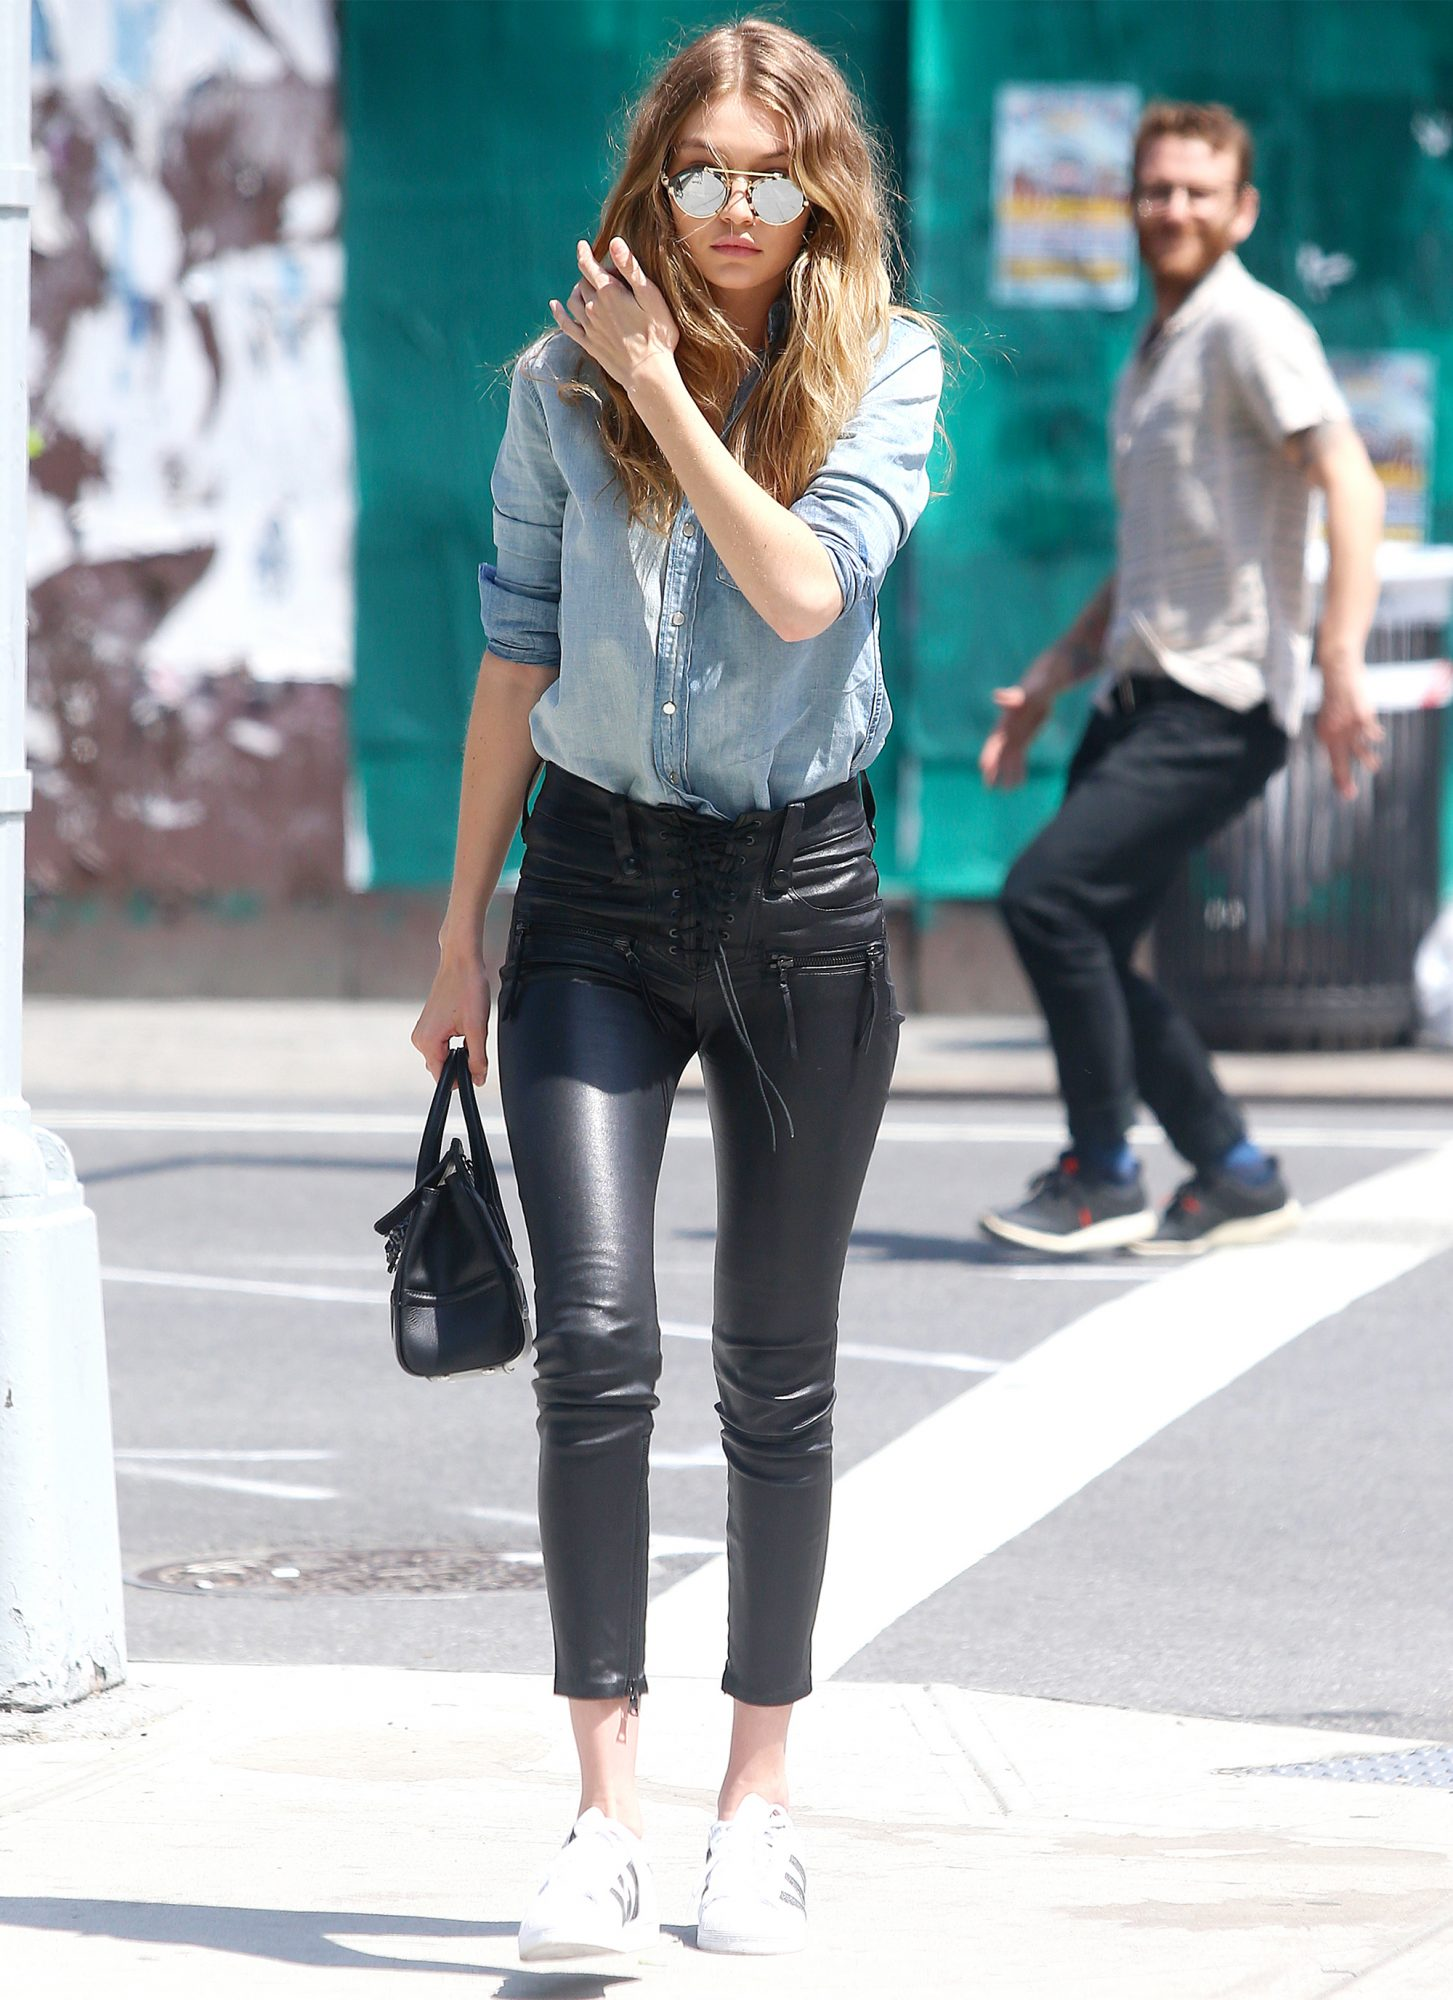 Gigi Hadid Wears Lace Up Leather Pants And Sneakers In N Y